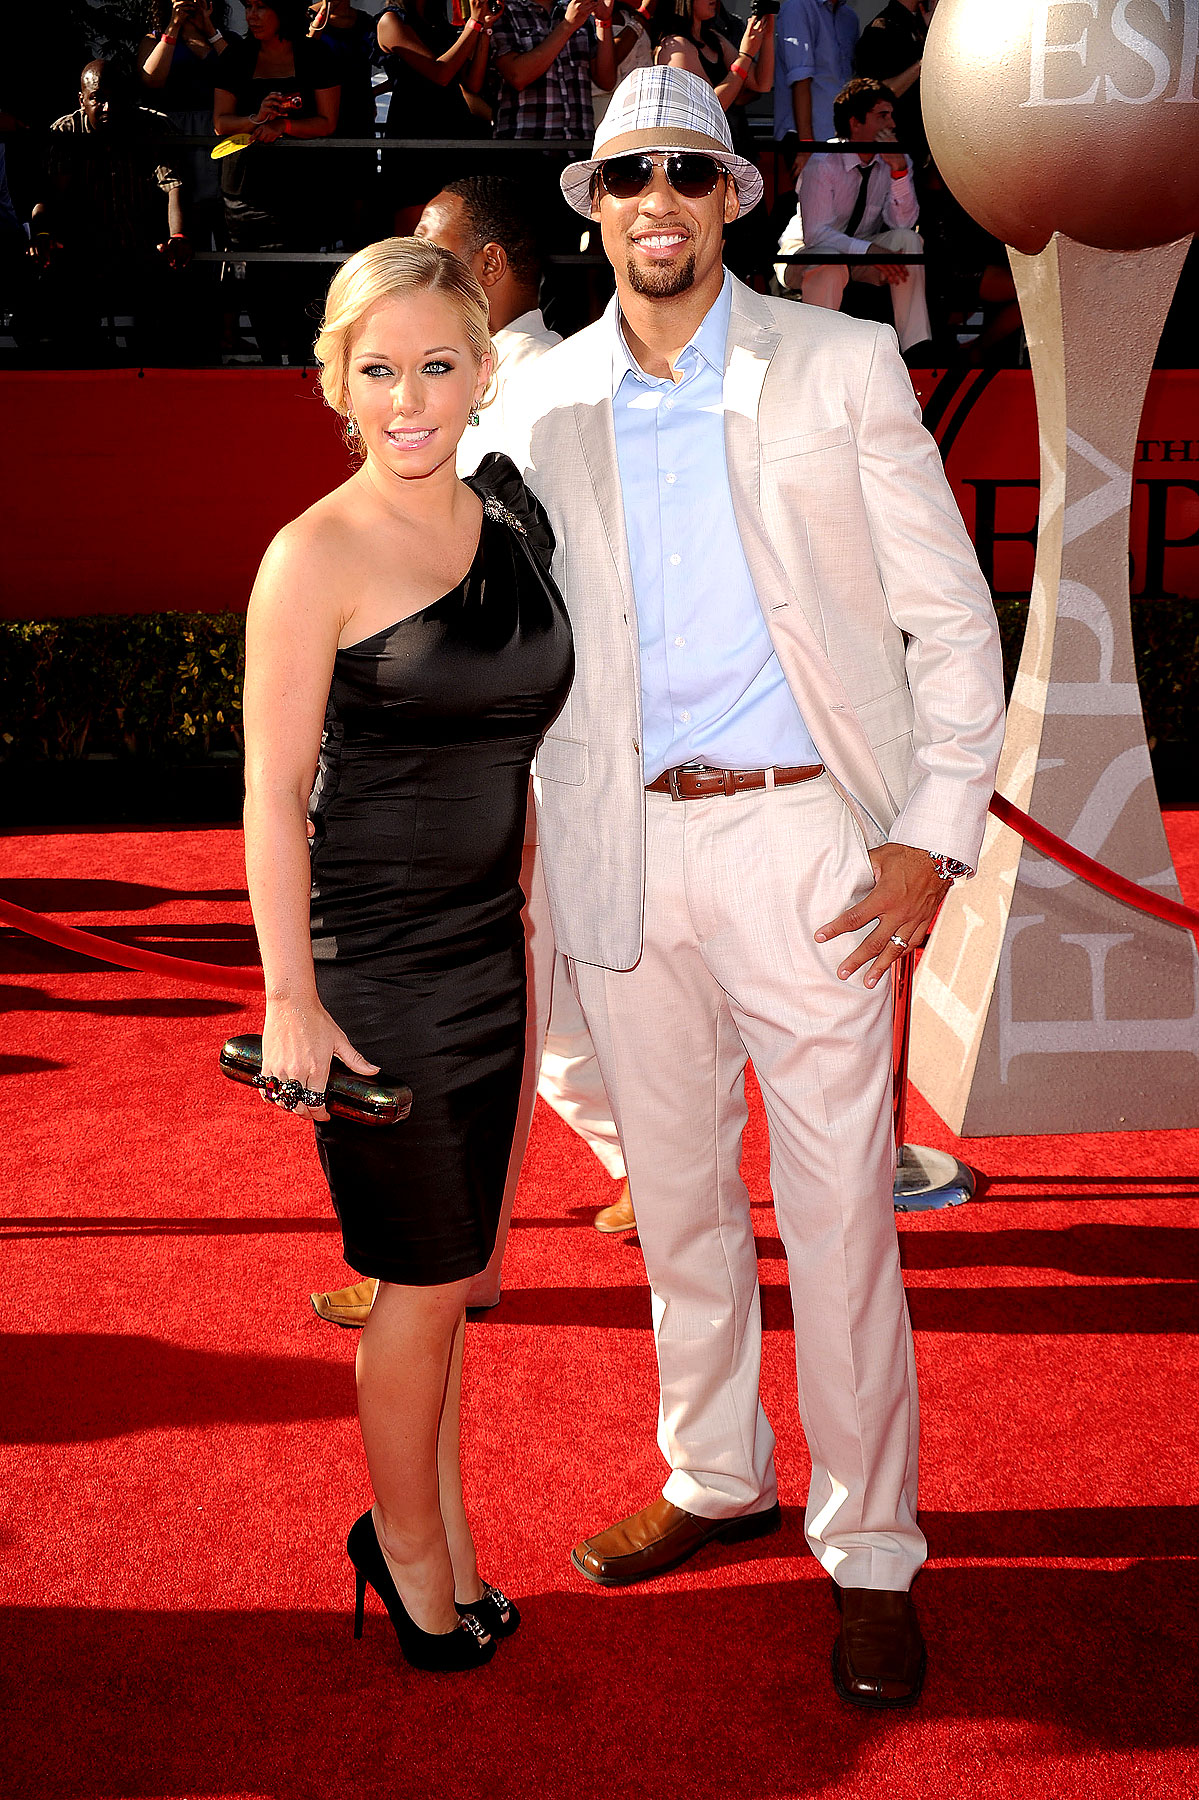 Fashion FAILs & FTWs Of The 2010 ESPY Awards (PHOTOS)